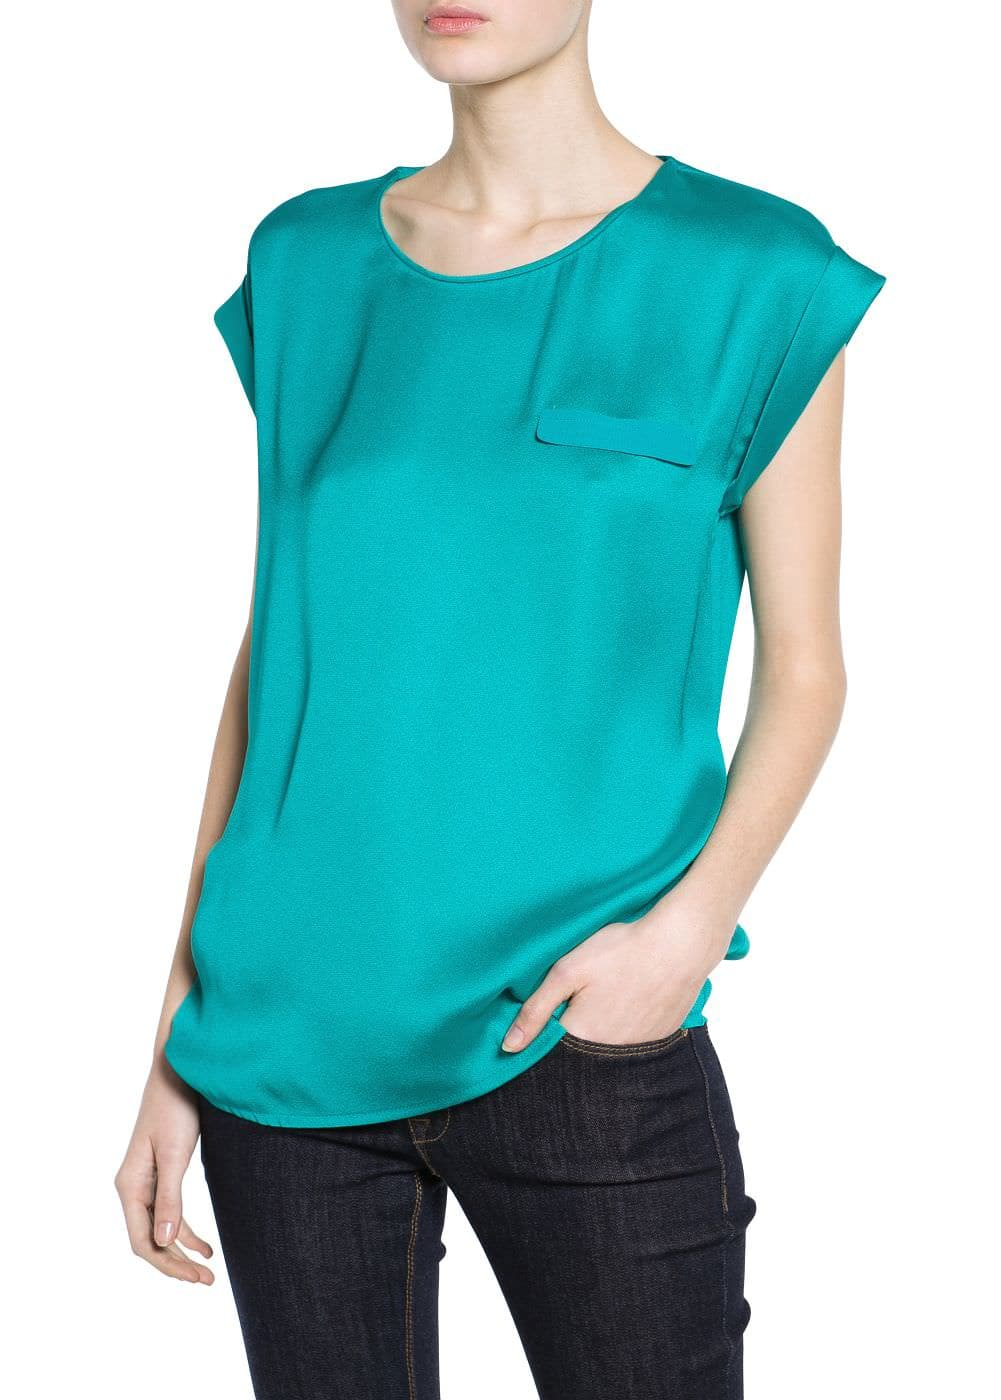 Decorative pocket satin blouse